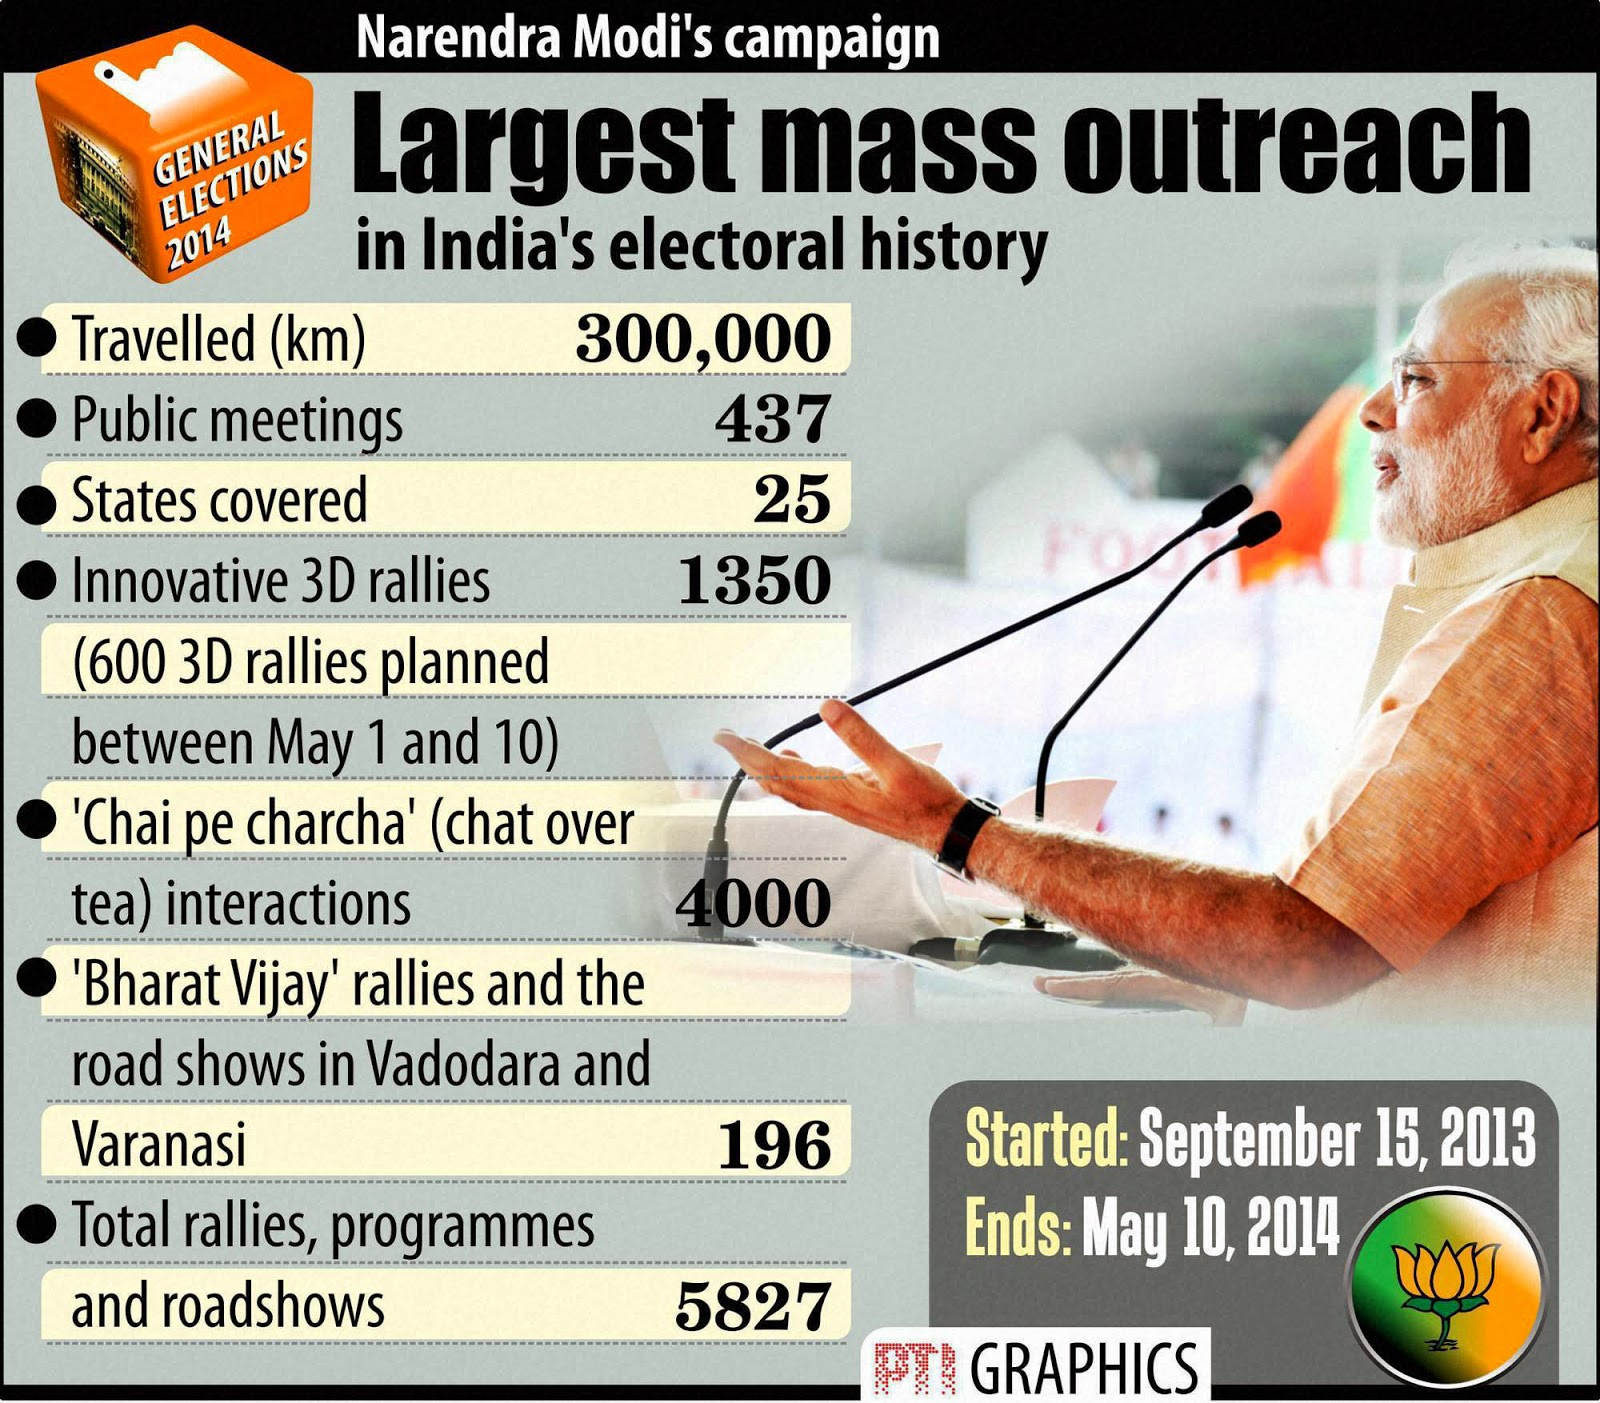 Modi's Campaign Largest Mass Outreach in Electoral History